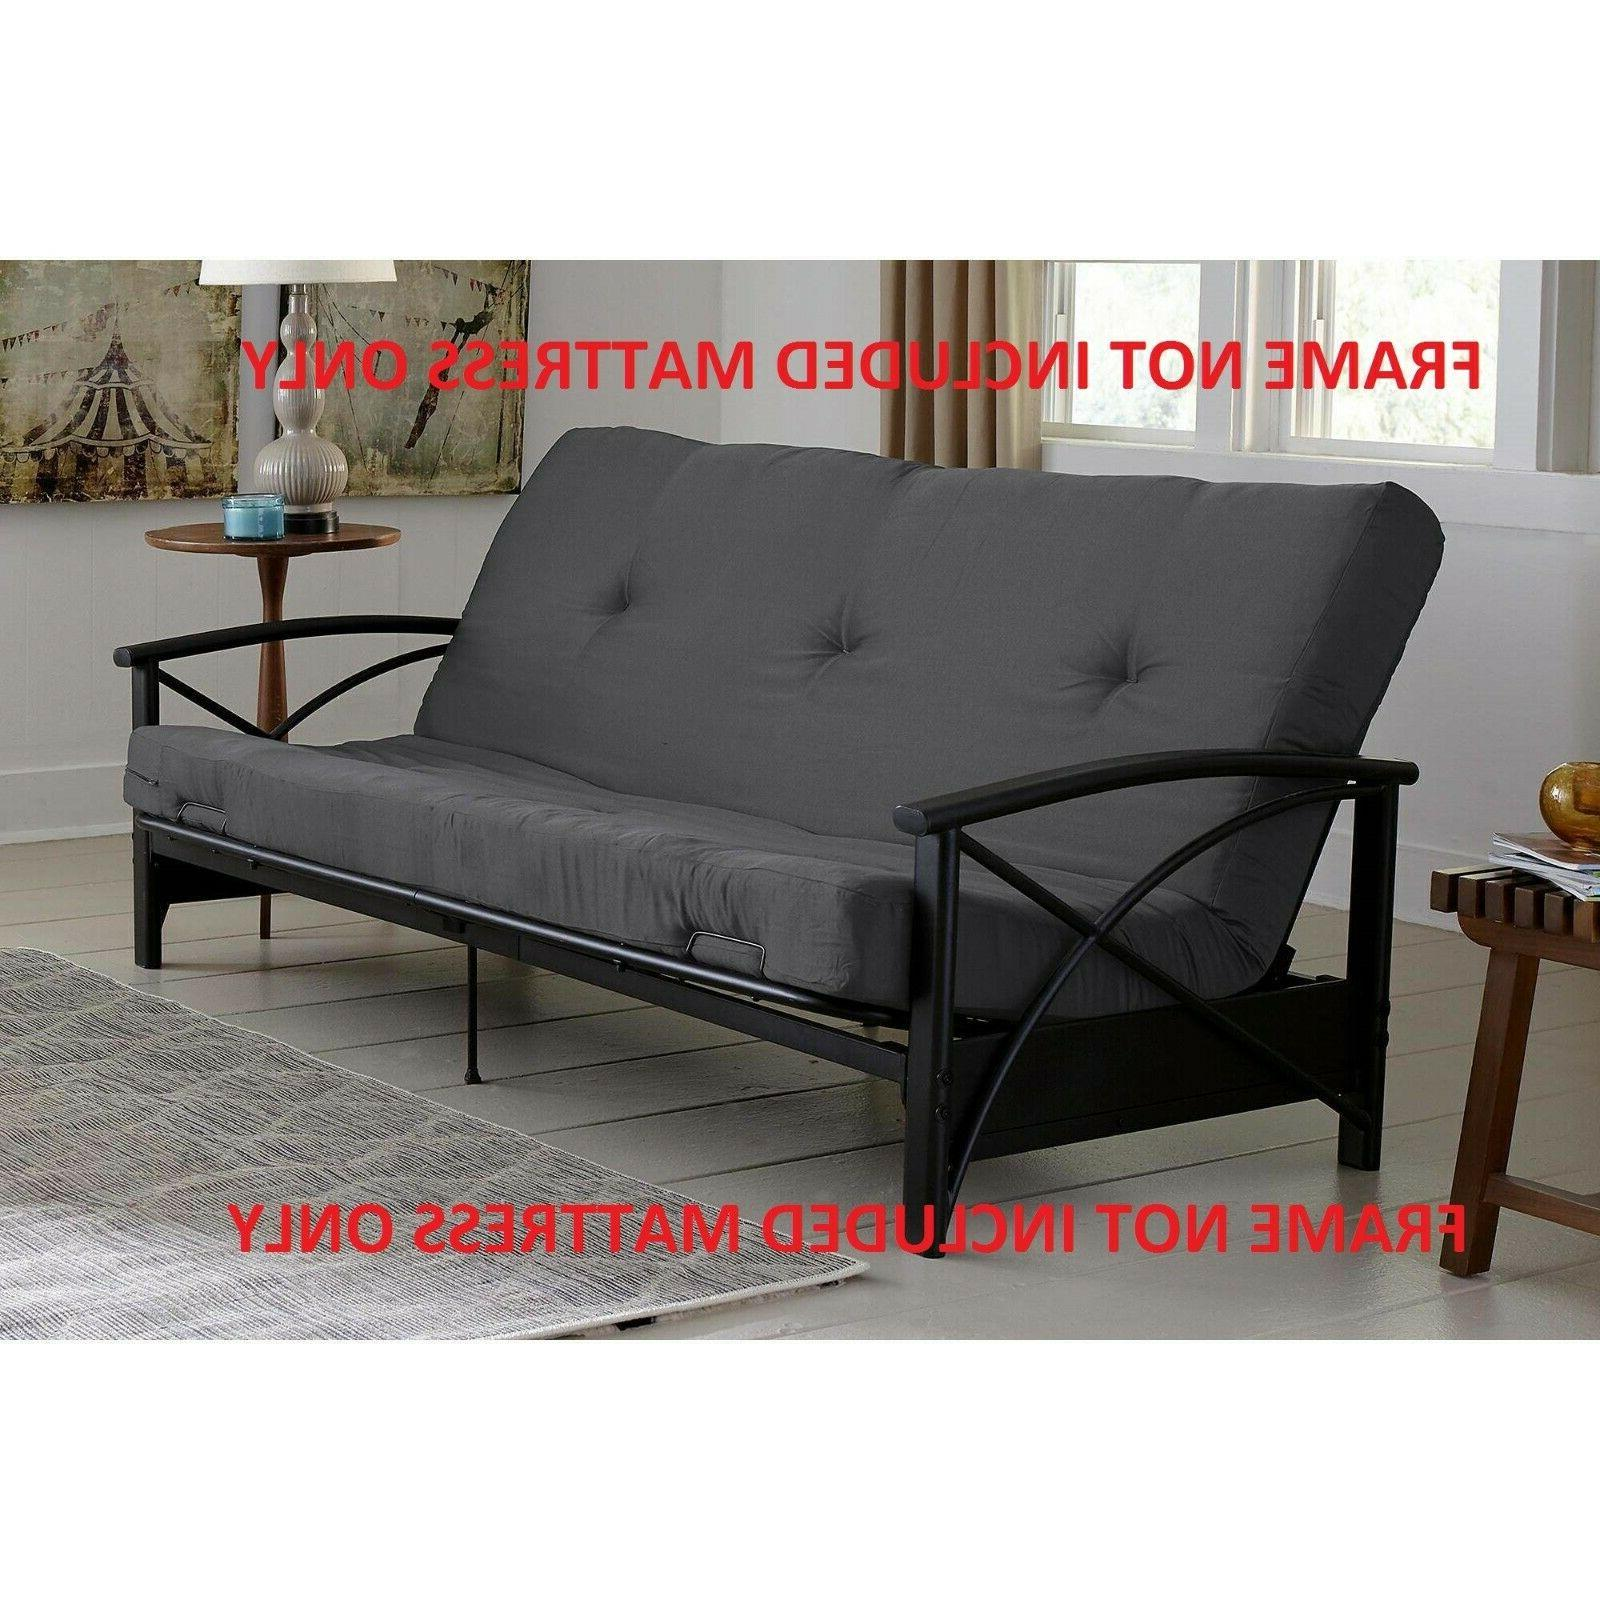 Futon Room Bed Full Size